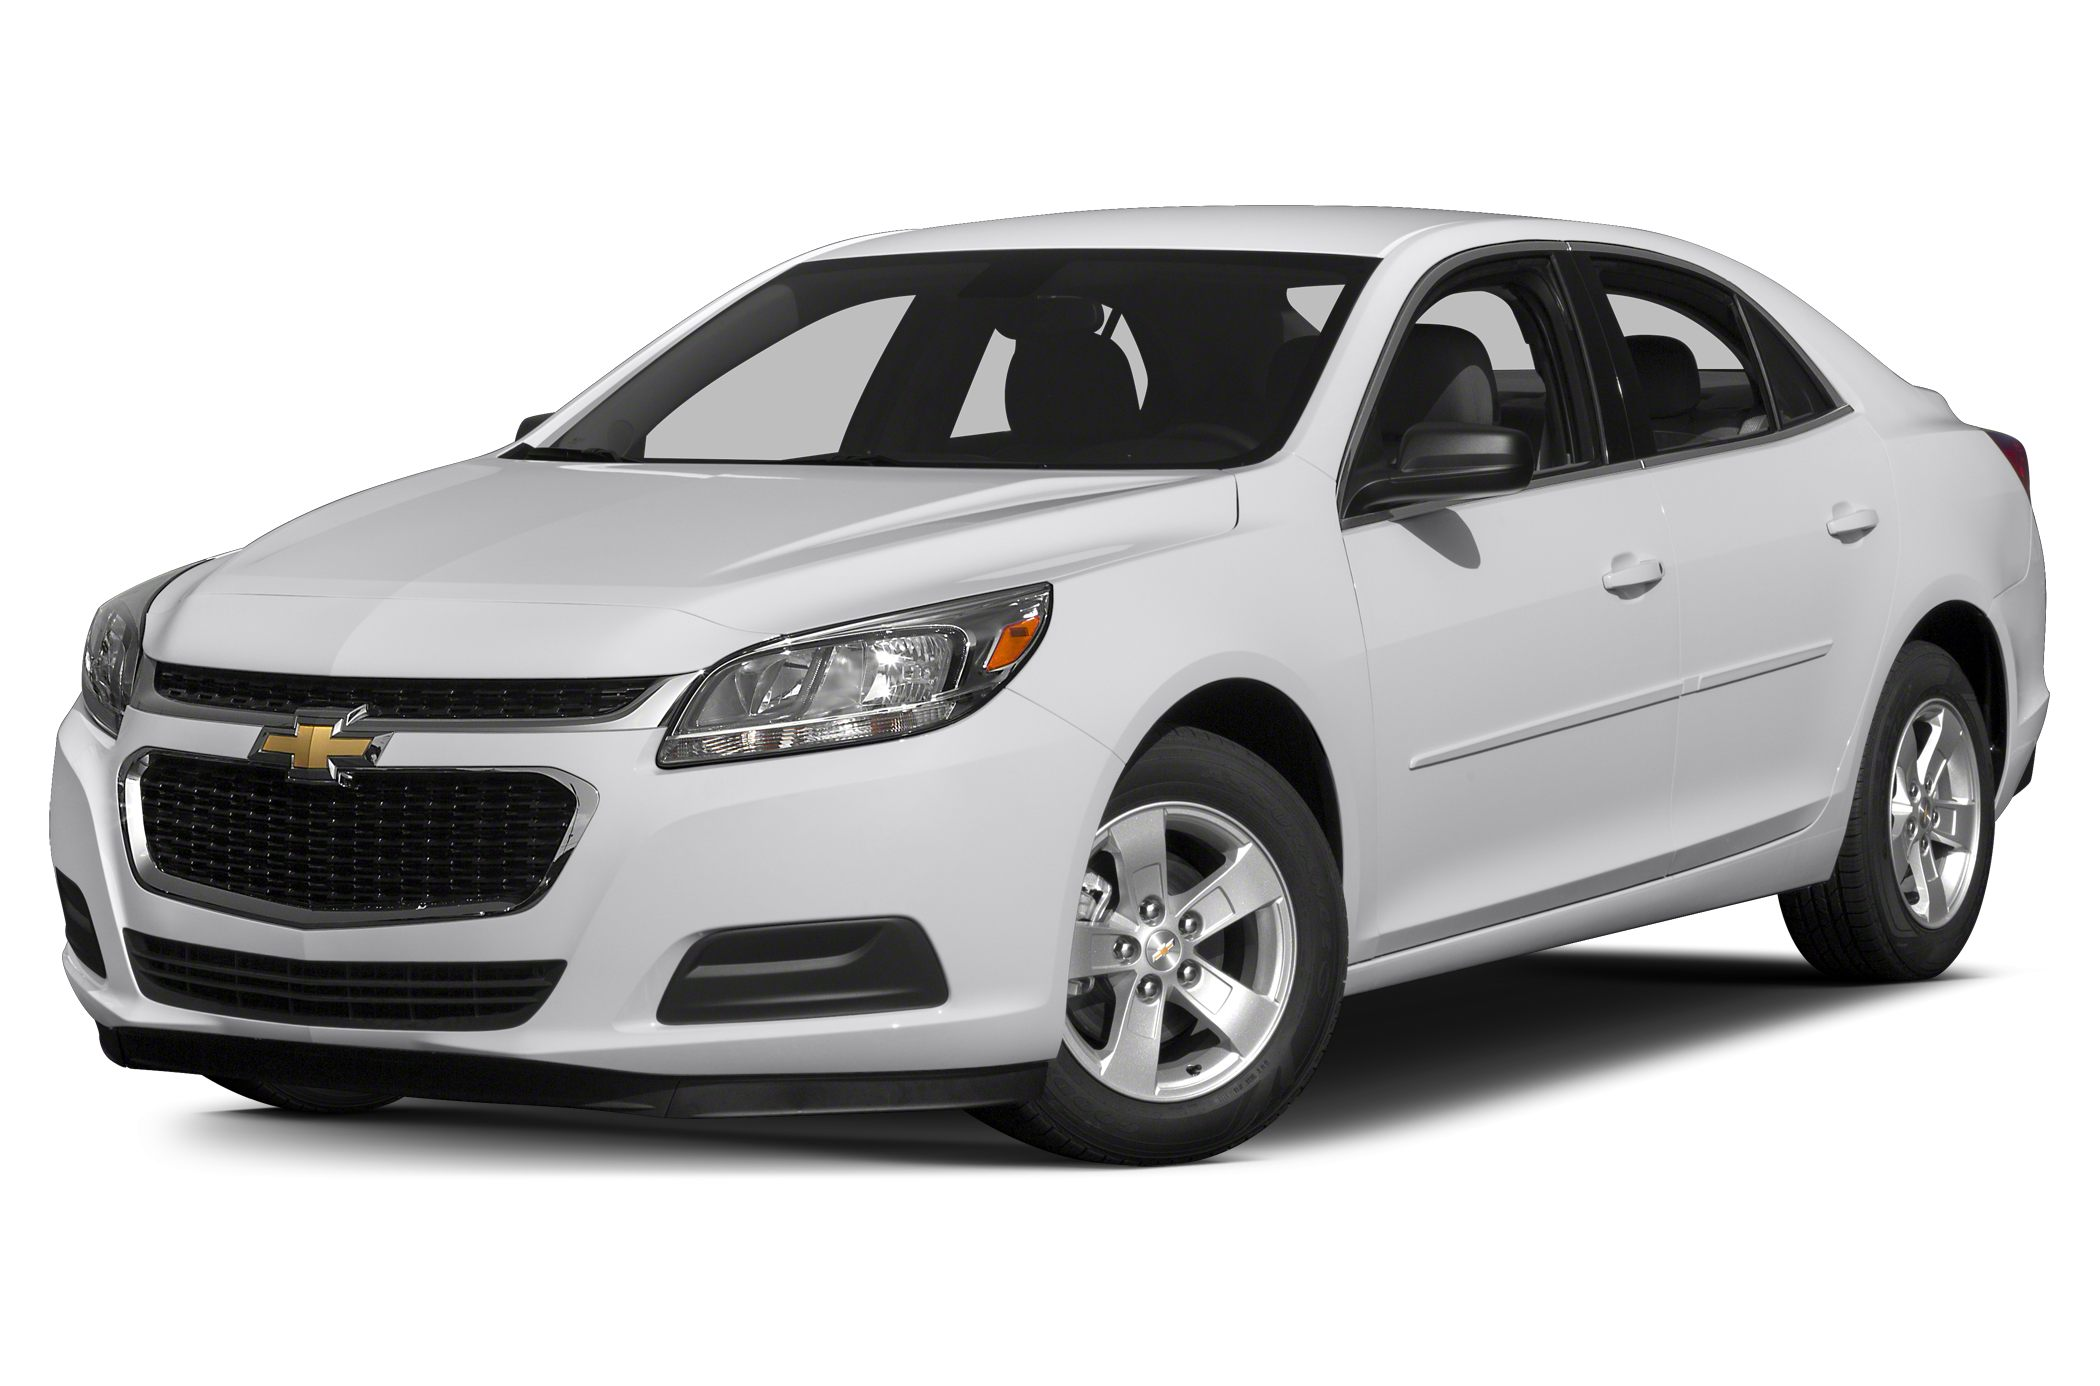 2014 Chevrolet Malibu 2LZ Sedan for sale in Hattiesburg for $35,405 with 0 miles